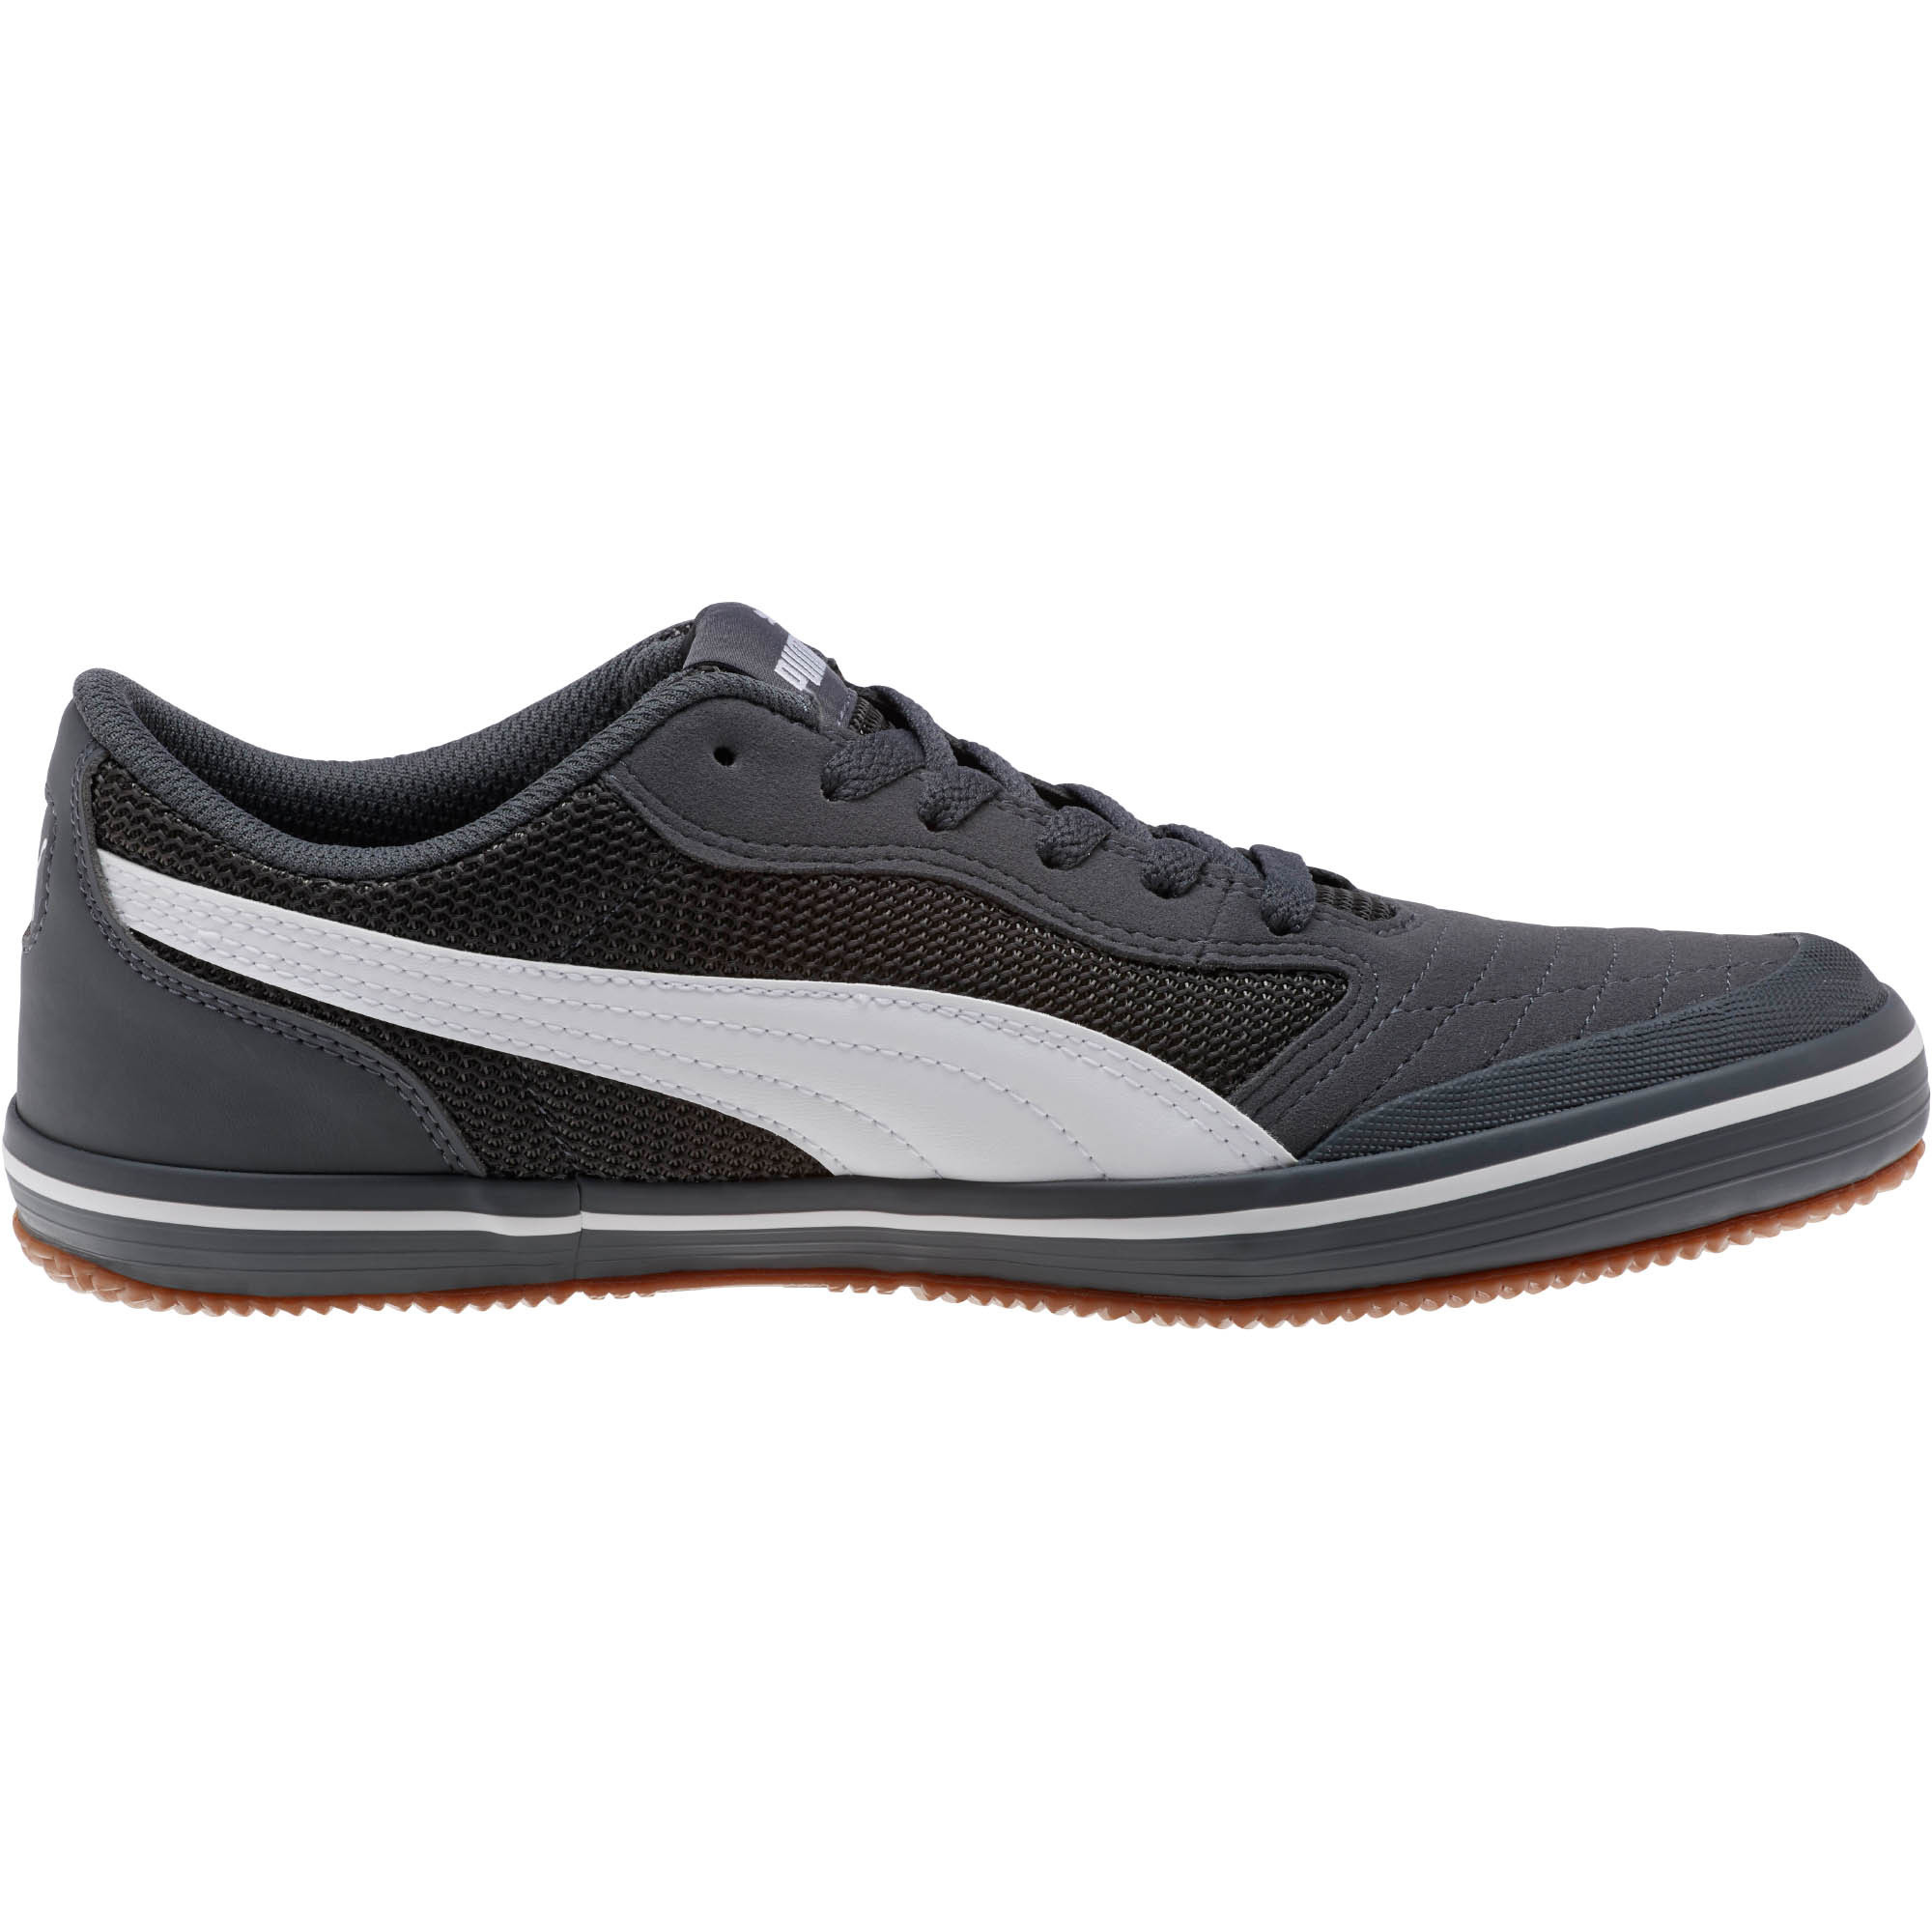 PUMA-Men-039-s-Astro-Sala-Sneakers thumbnail 5